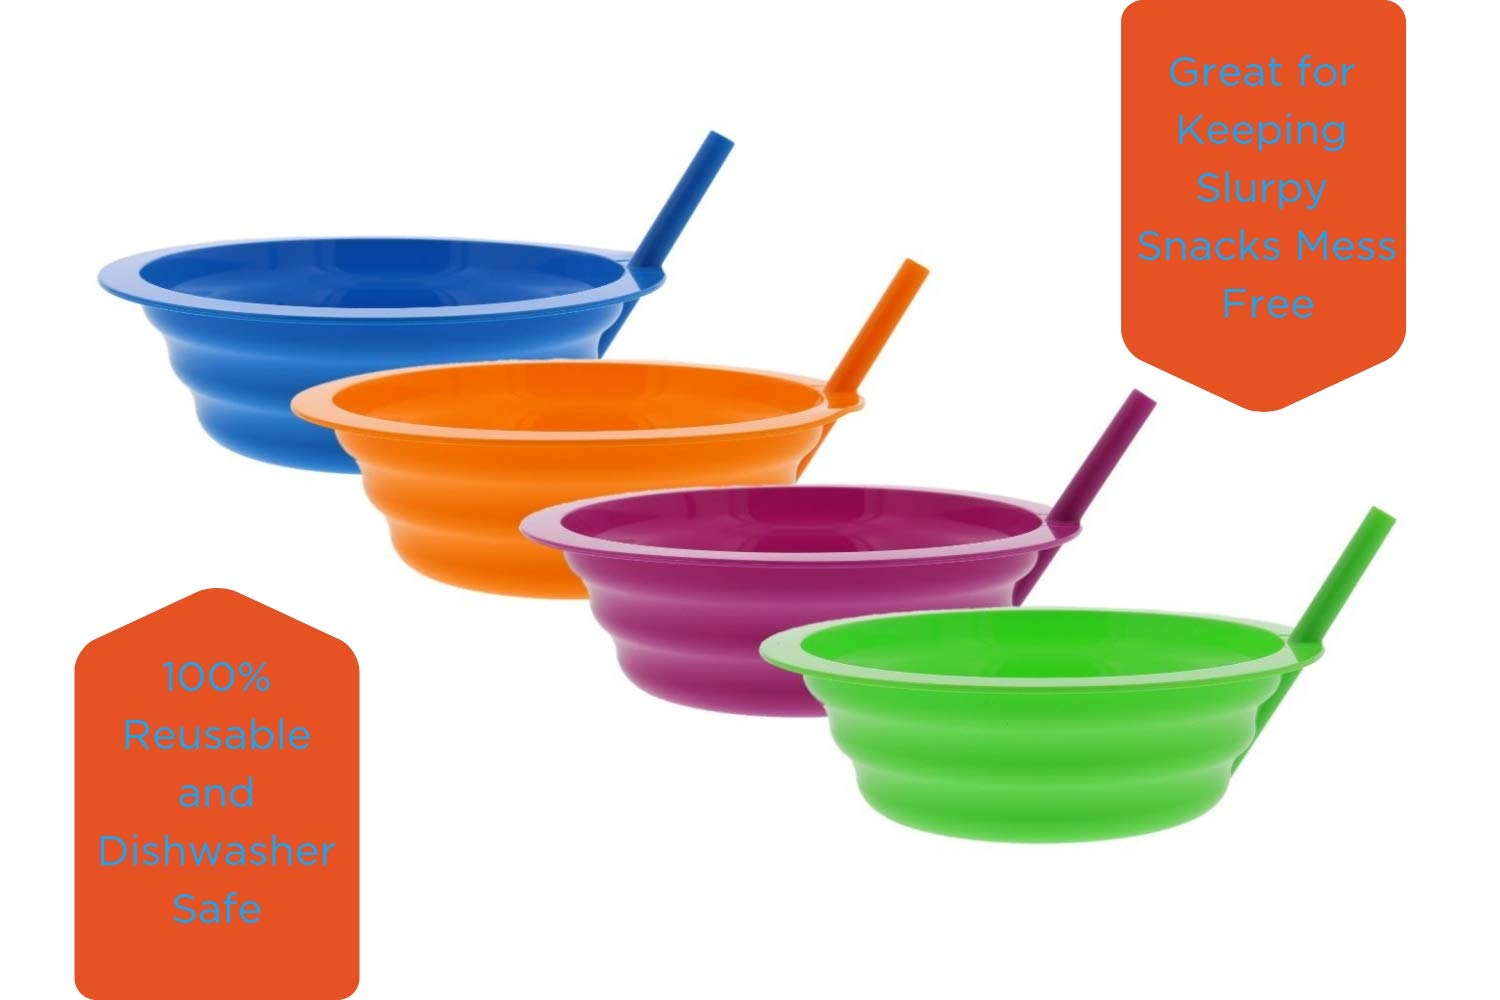 Arrow Sip-A-Bowl With Built In Straw, 22 oz, Blue, Purple,Green, Orange (4 Pack) by Arrow Home Products (Image #3)